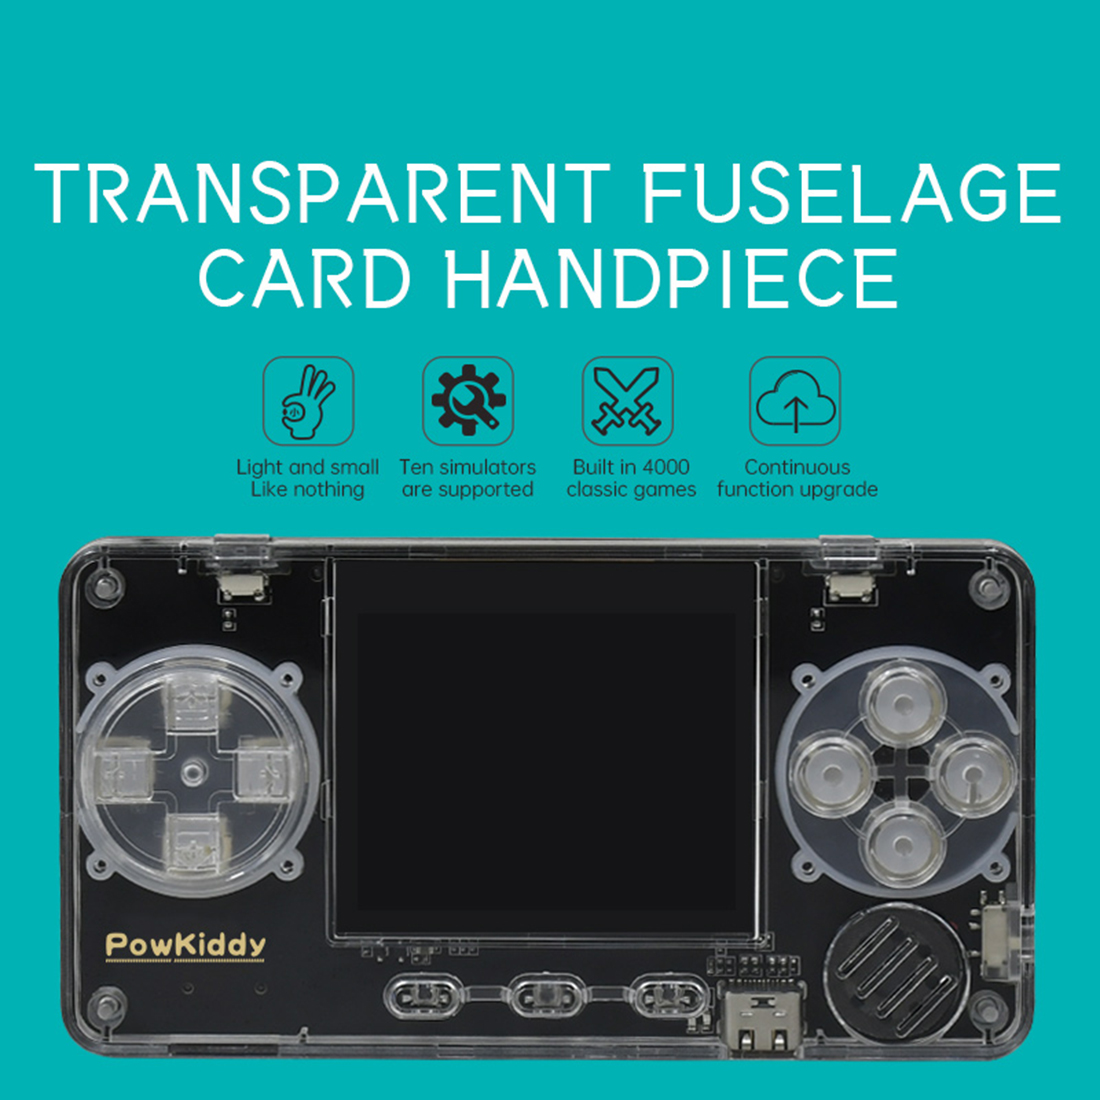 POWKIDDY A66 Handheld 10000 Games Retro Game Console Ultra Card Transparent Game Machine - 32G Silver